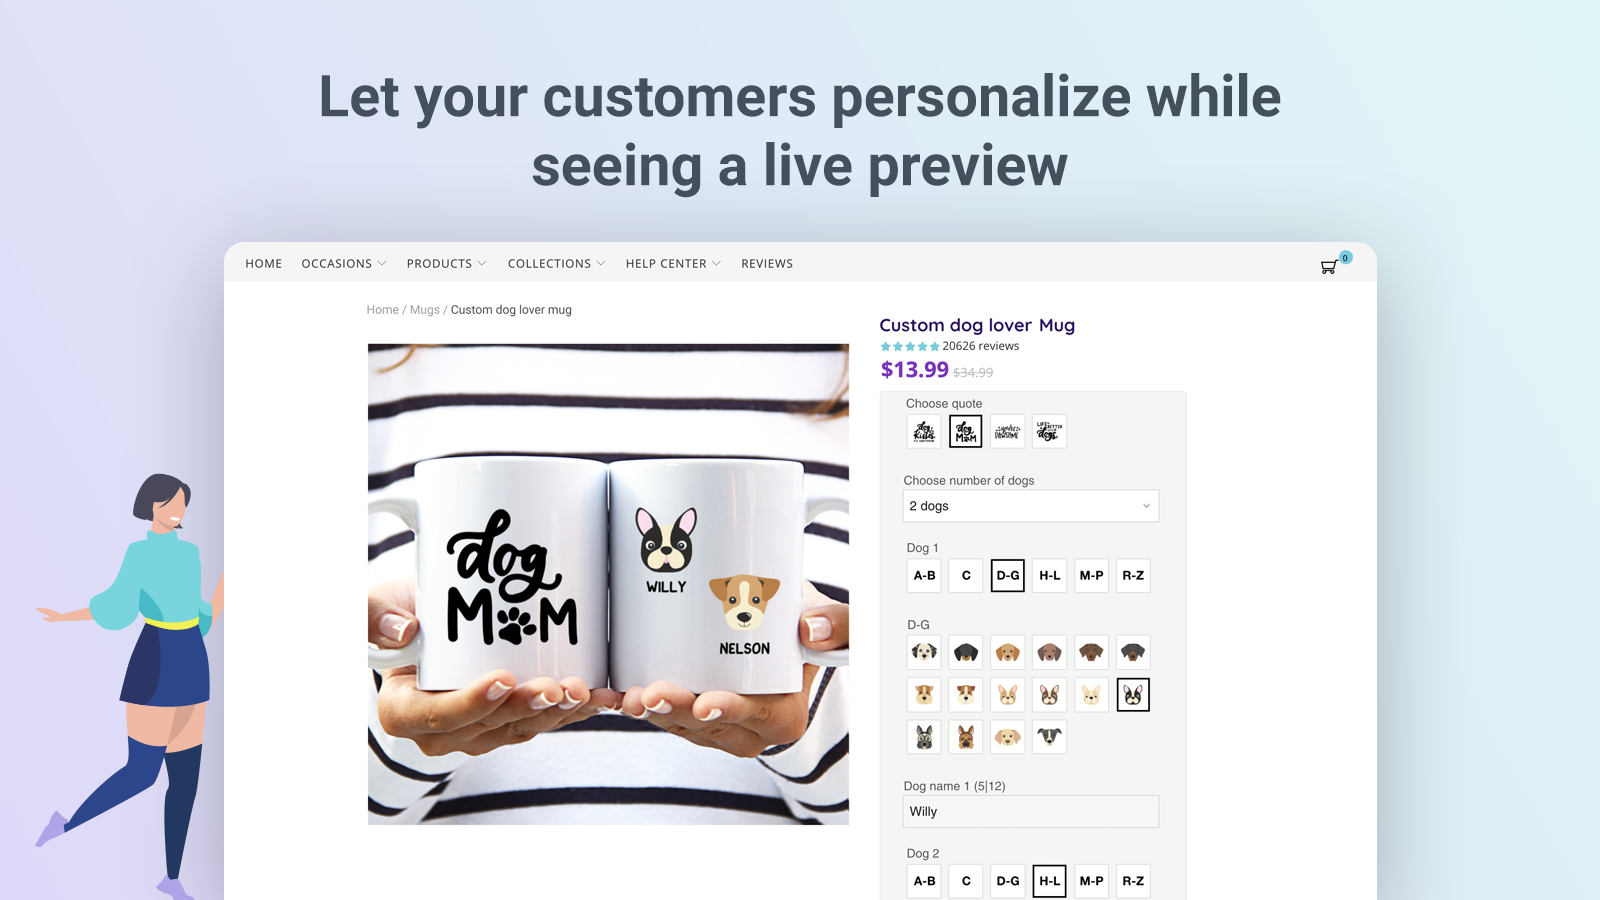 Customers personalize with live preview